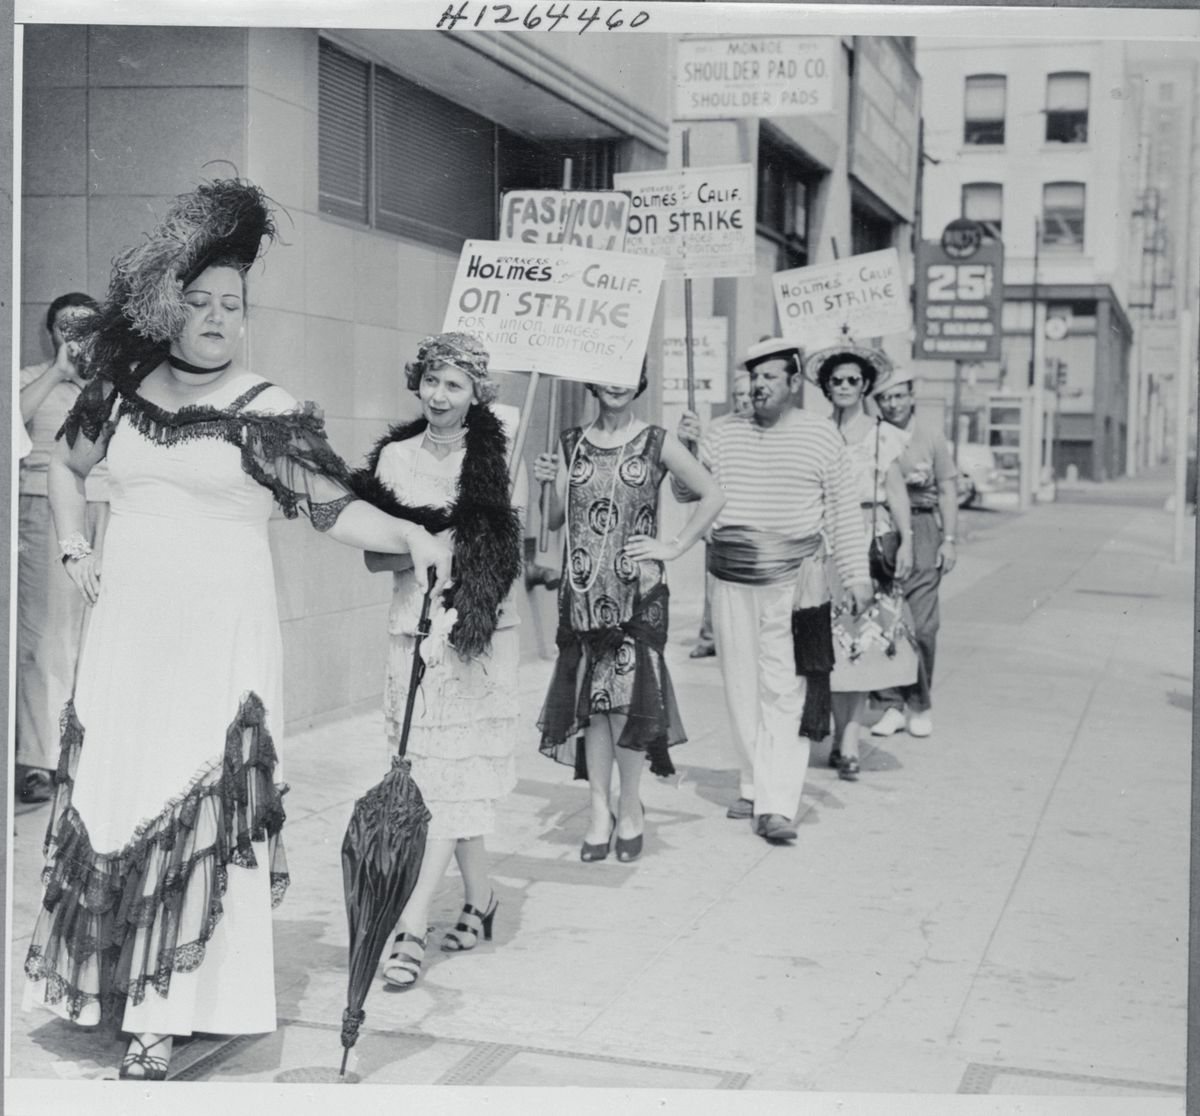 Workers protest in costumes from the 1920s, 1930s, 1940s.